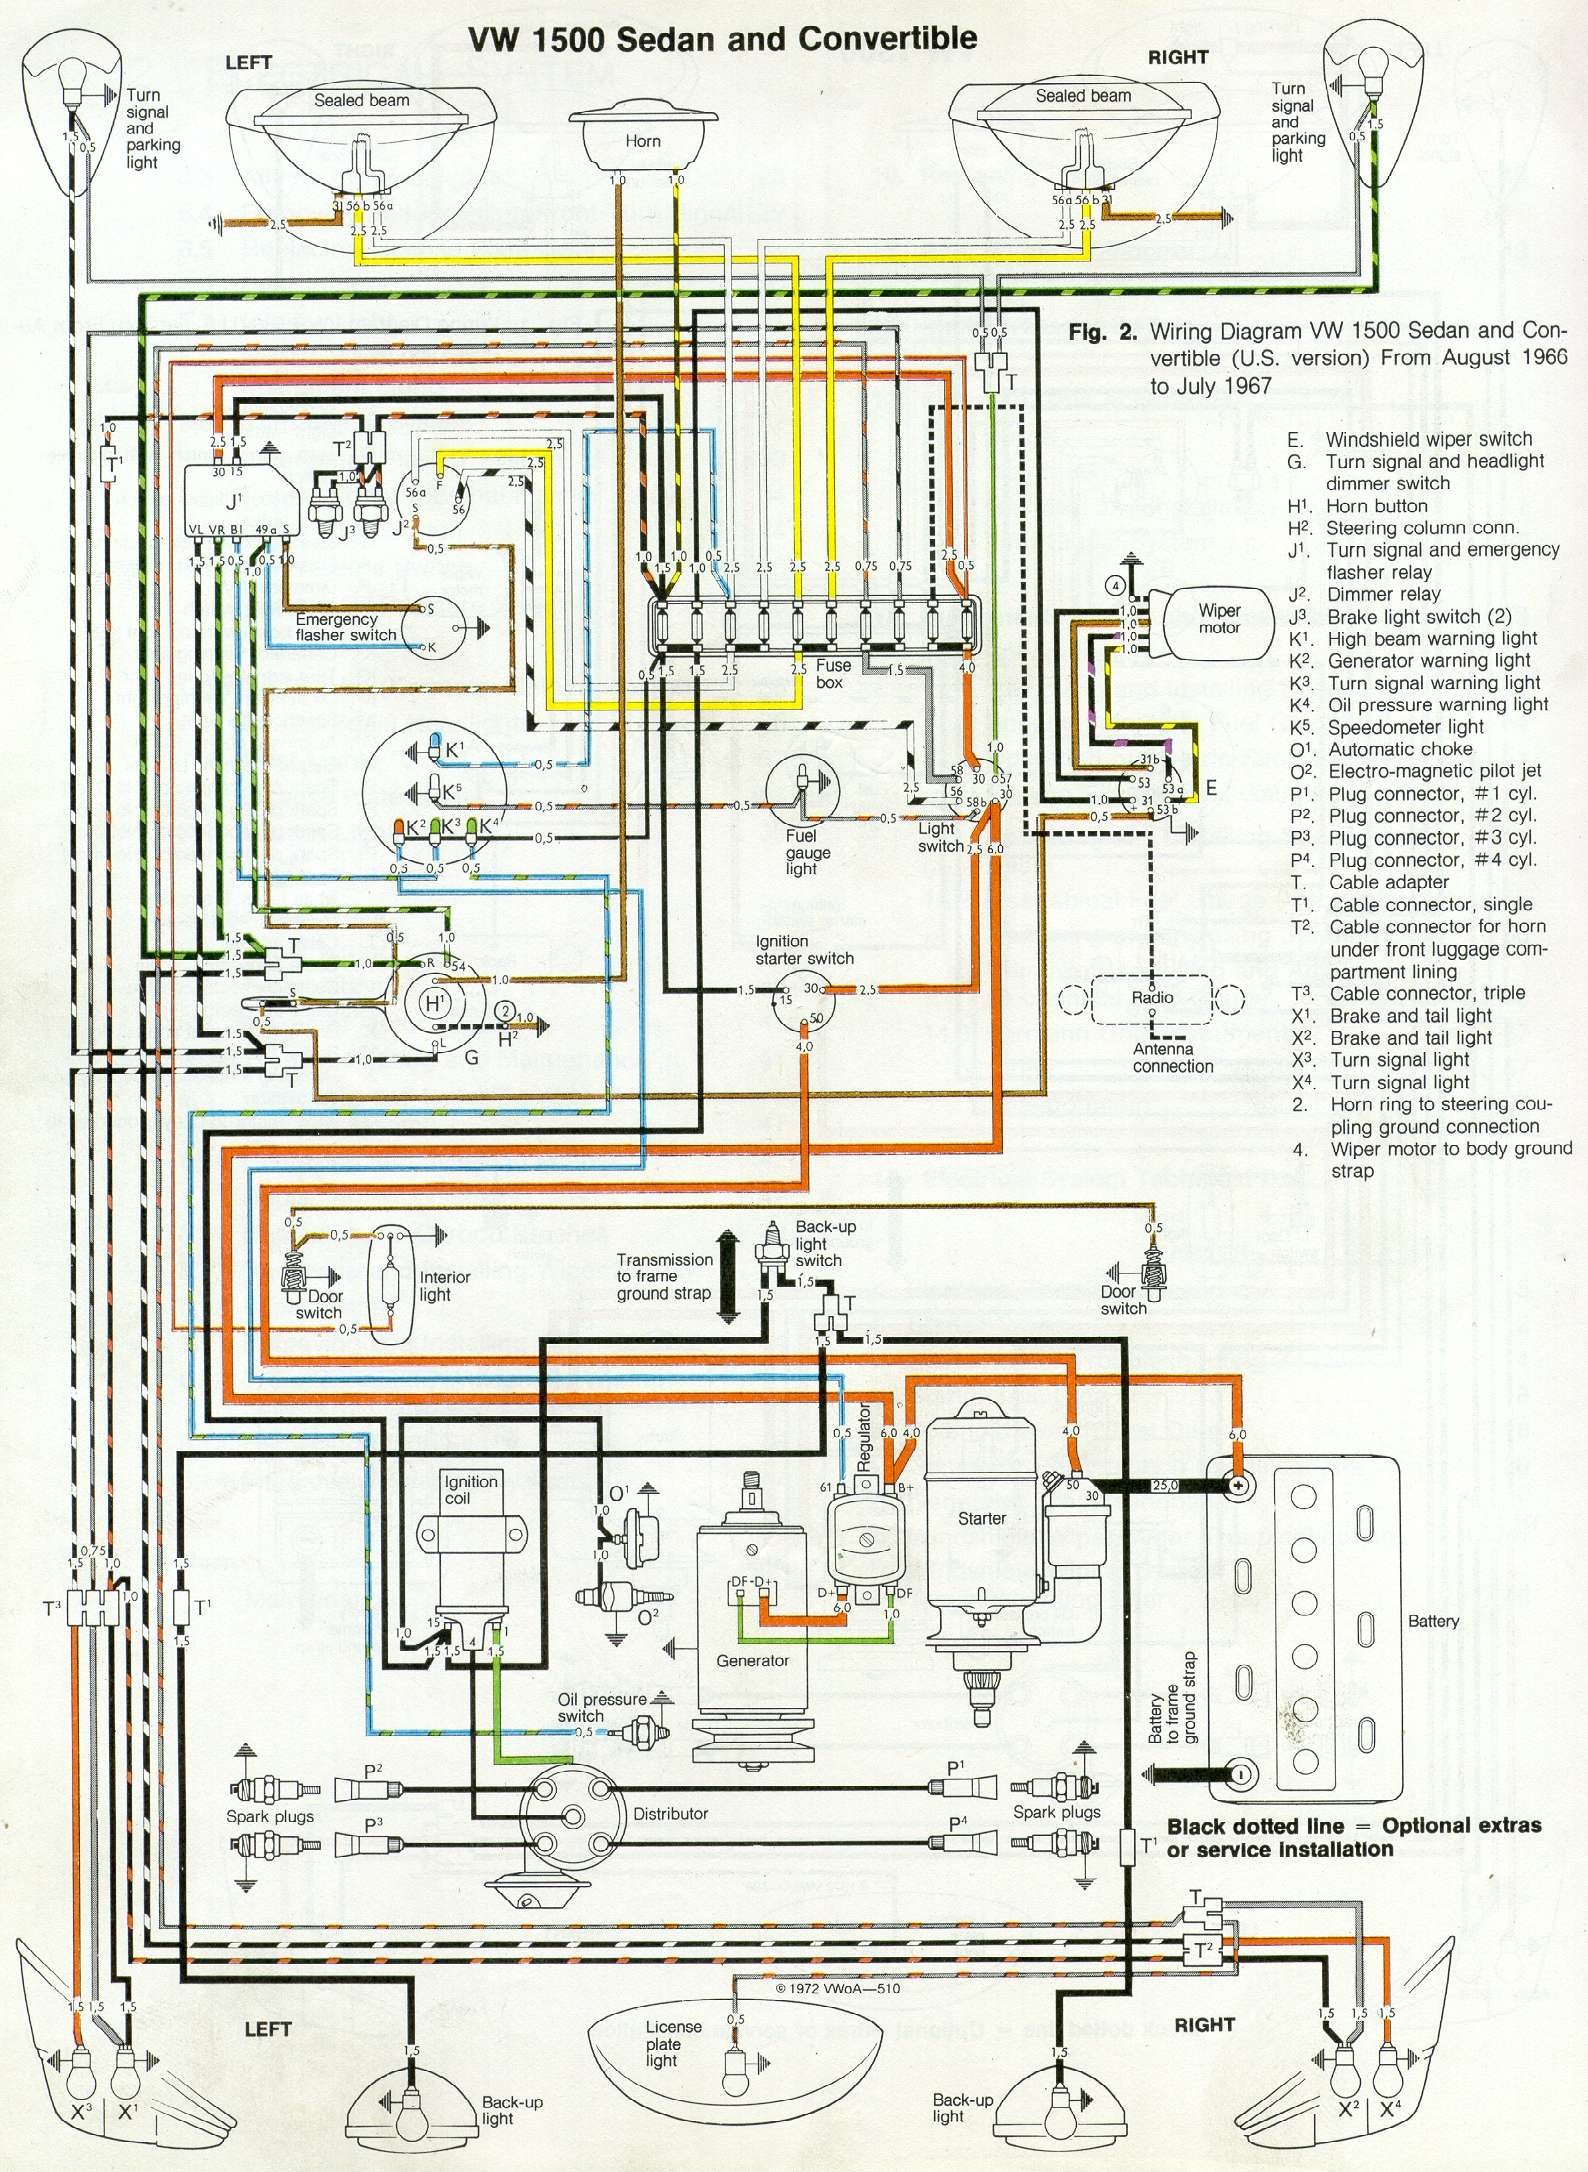 VW bug_1967 dune buggy wiring diagram dune buggy wiring diagram color code dune buggy wiring diagram at webbmarketing.co